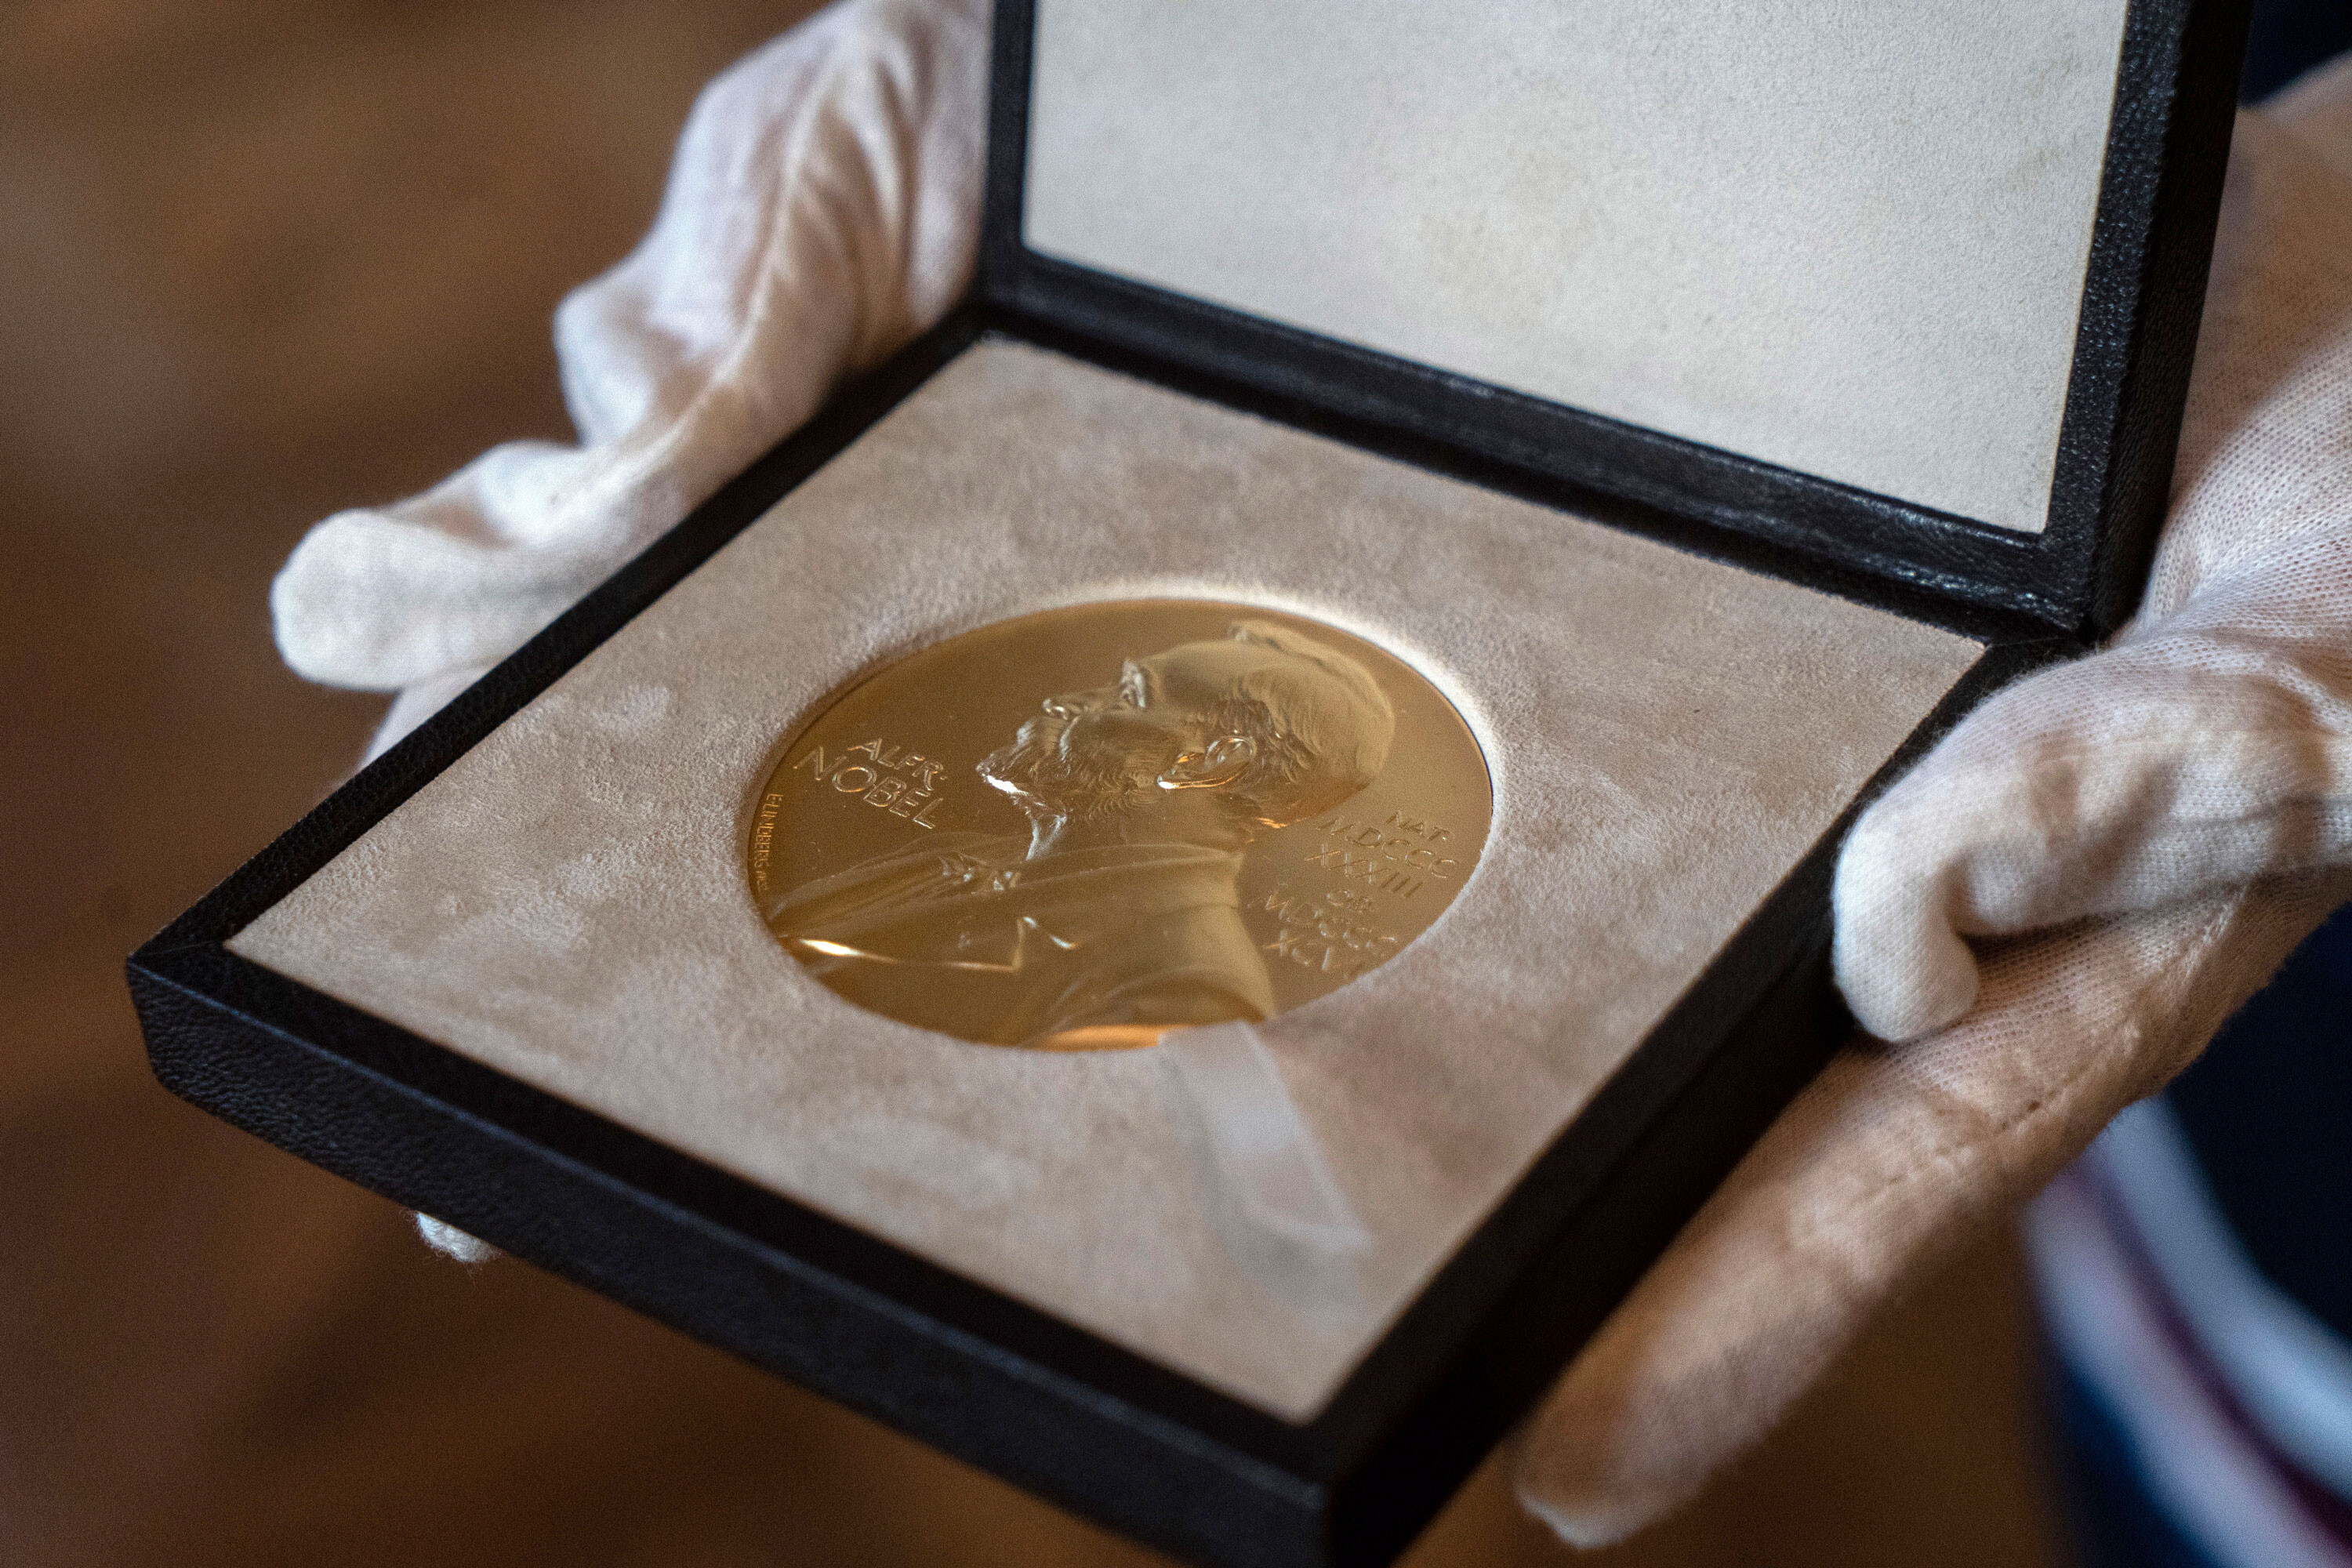 3 economists awarded Nobel for work on real-world experiments